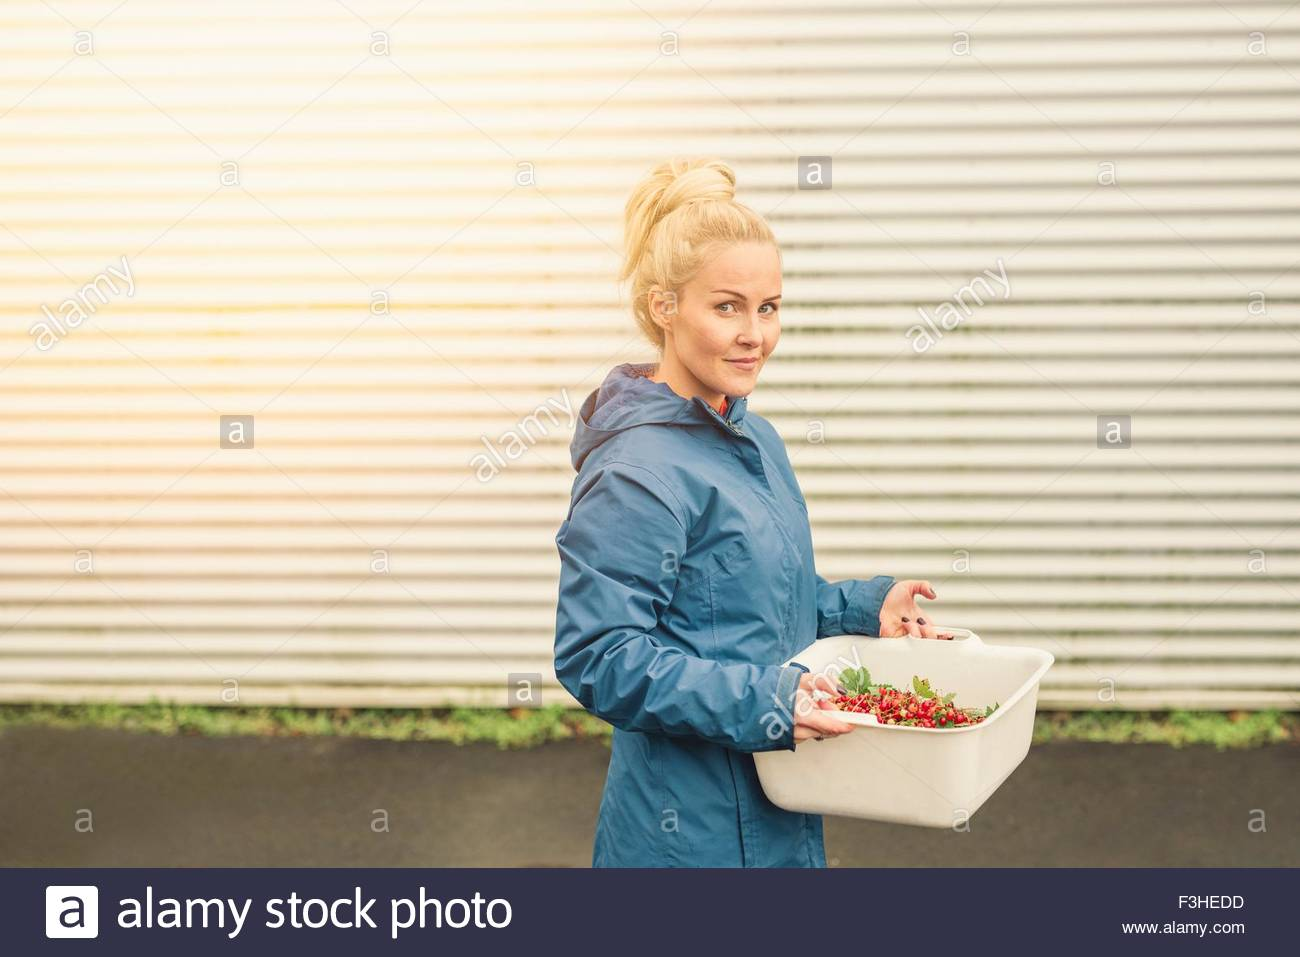 Mid adult woman holding container of redcurrants, outdoors - Stock Image